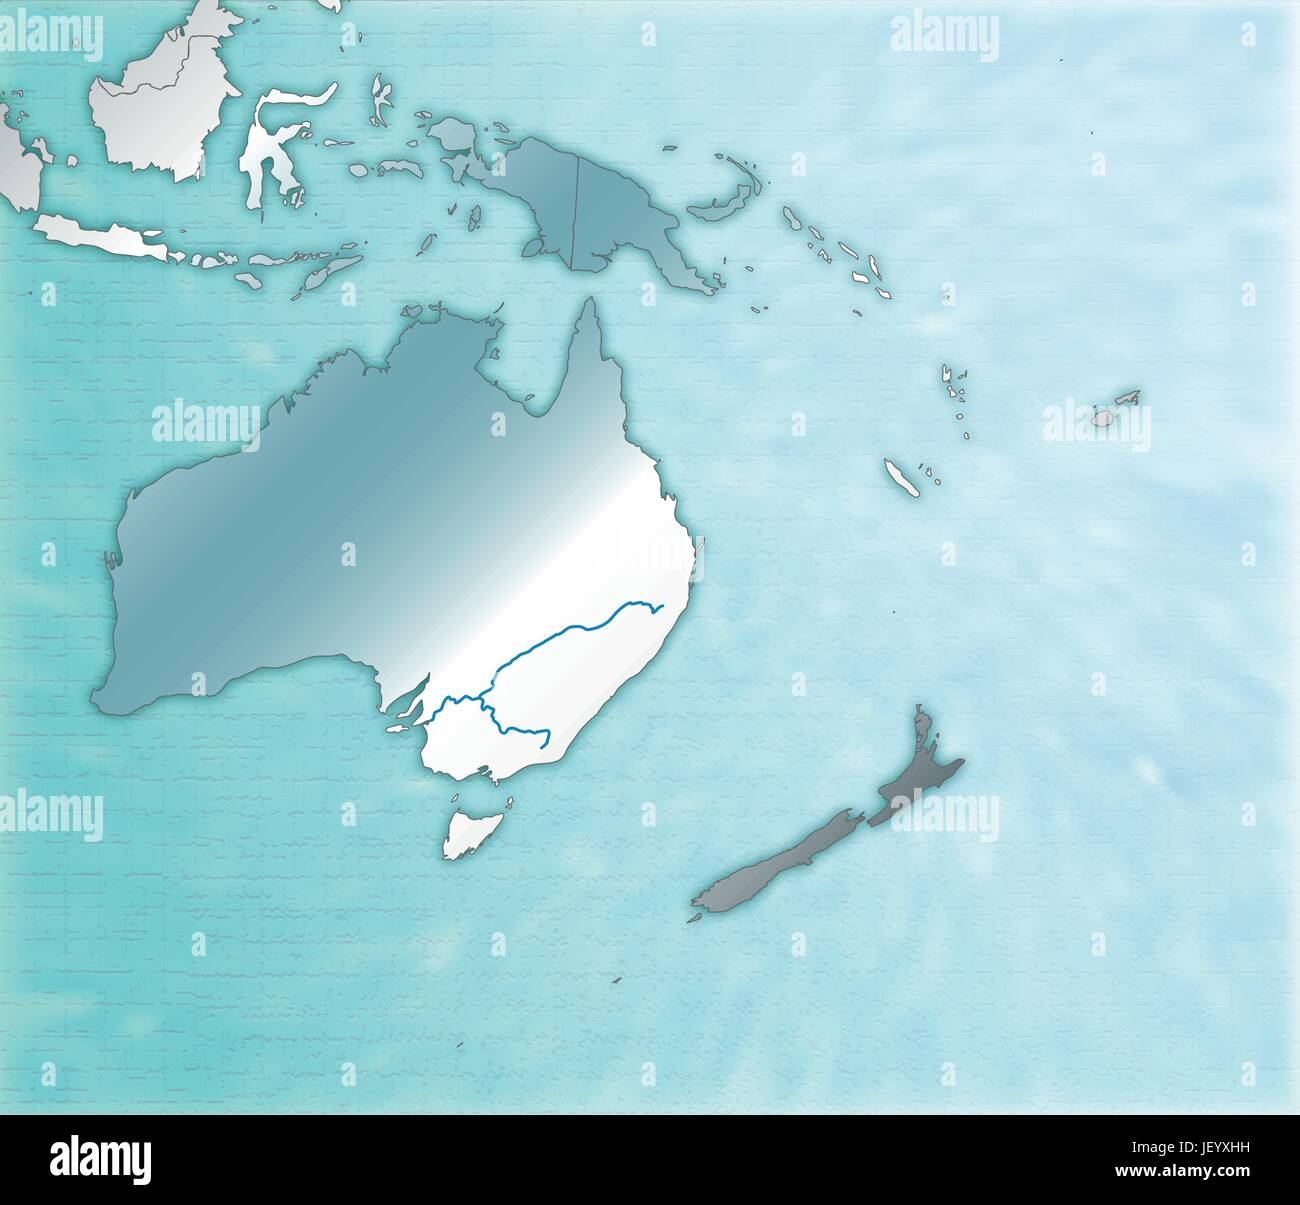 Australia Underwater Map.Map Of Australia As An Overview Map In Blue Stock Vector Art